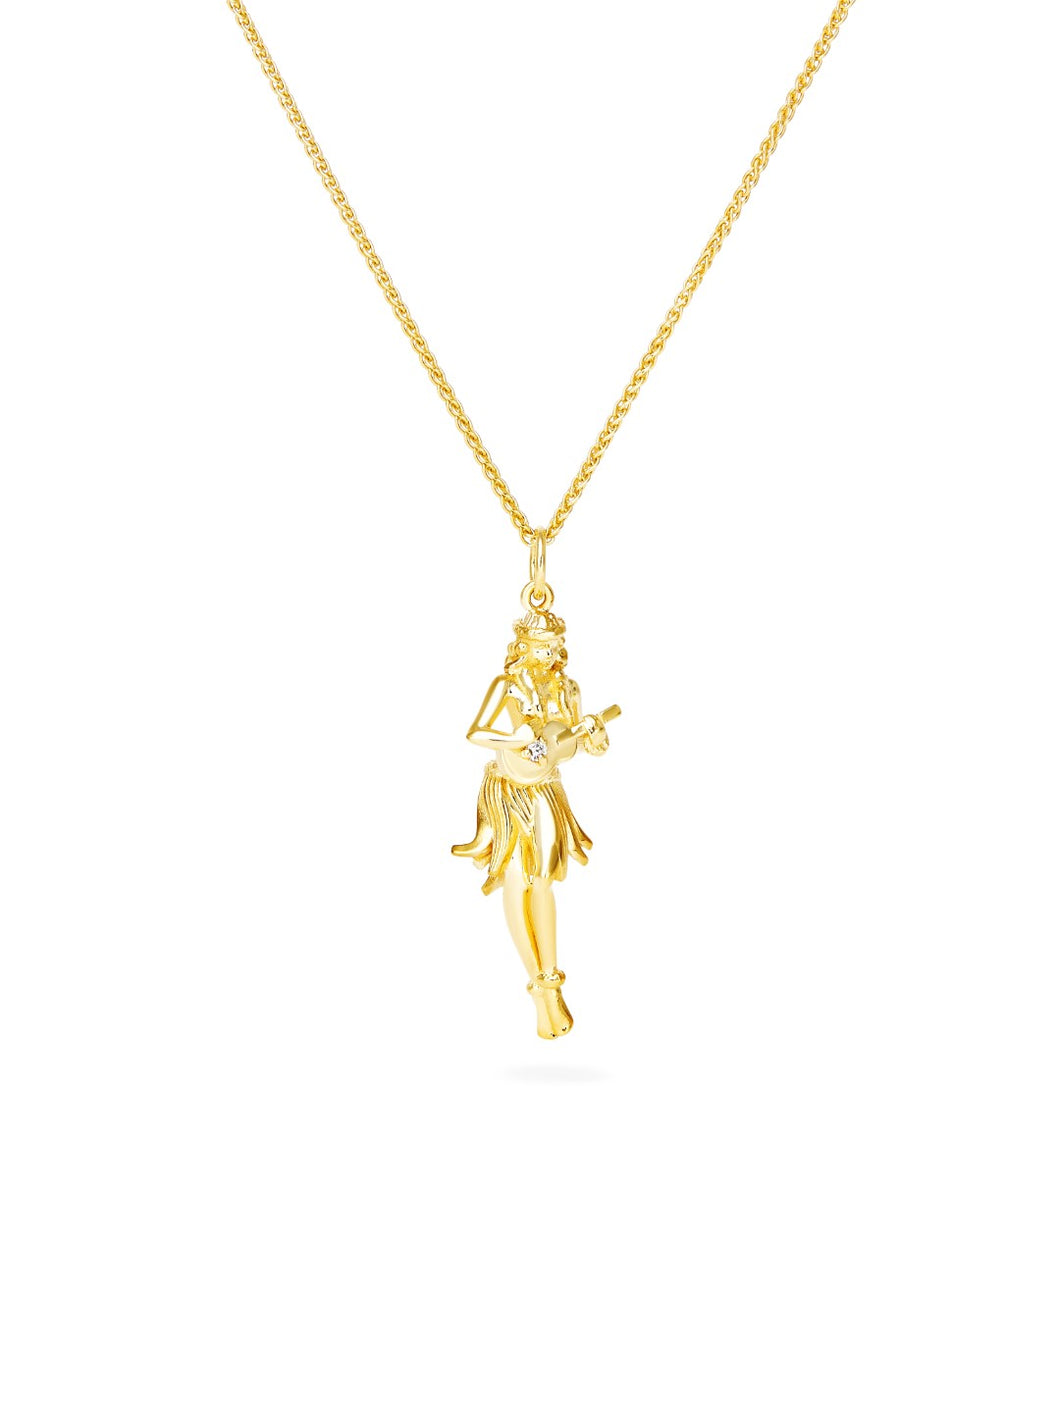 Hula Girl Pendant & Chain